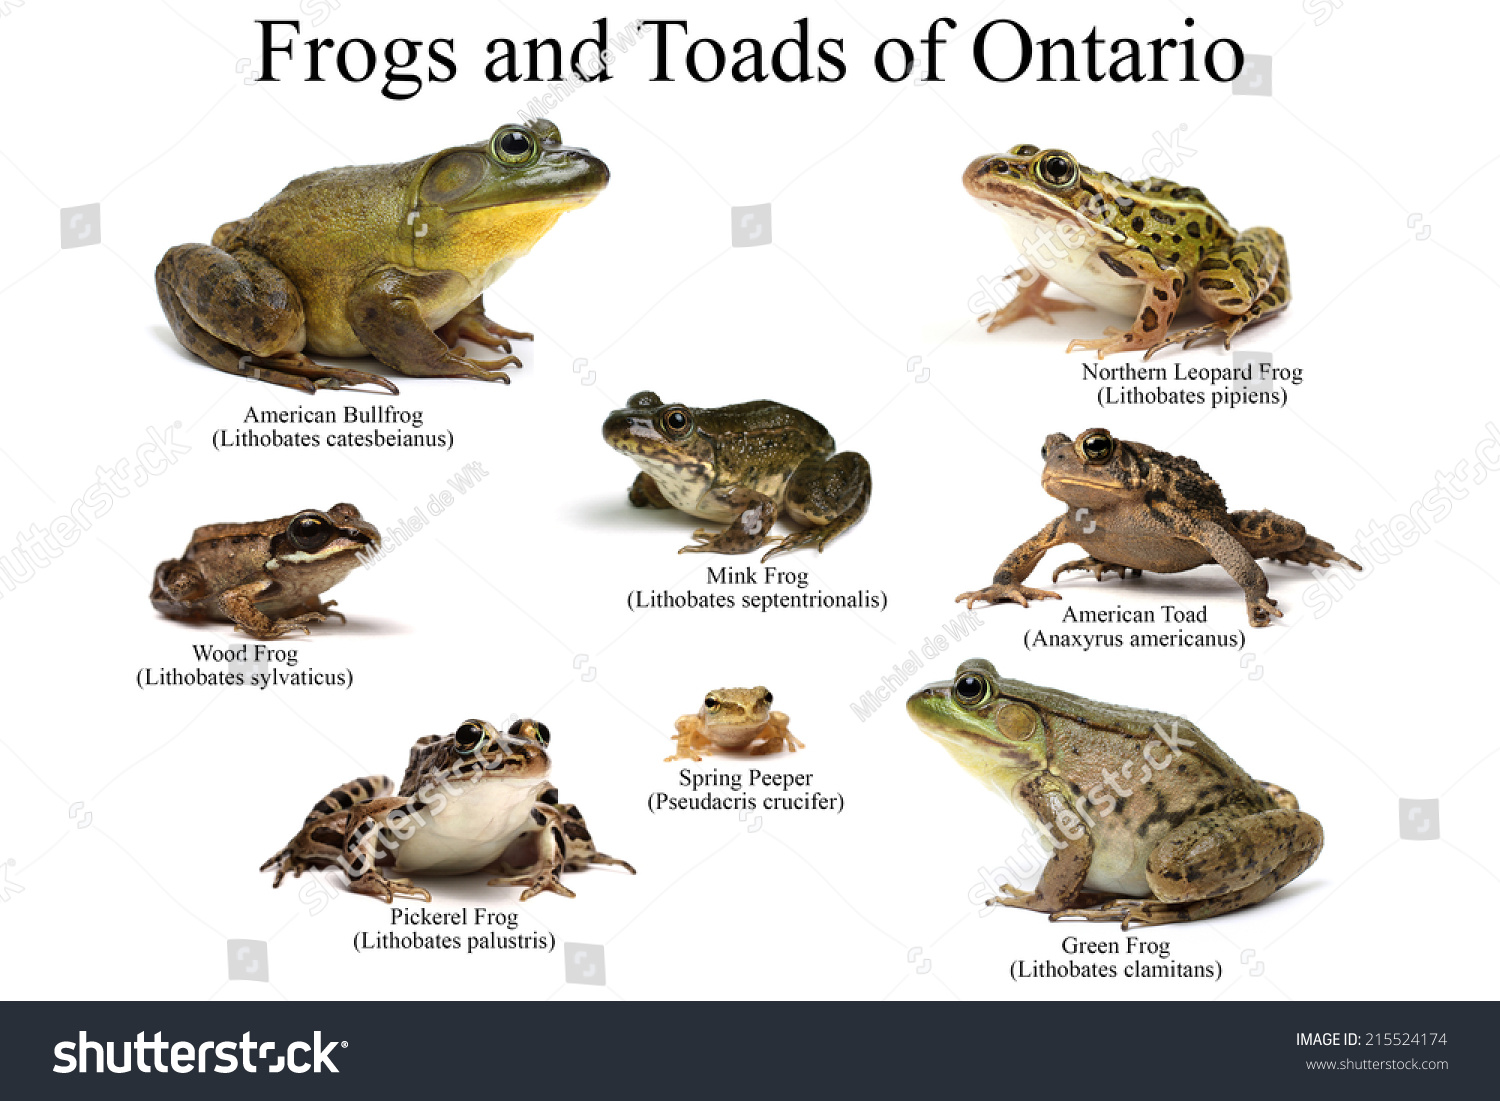 Frog Vs Toad Worksheet